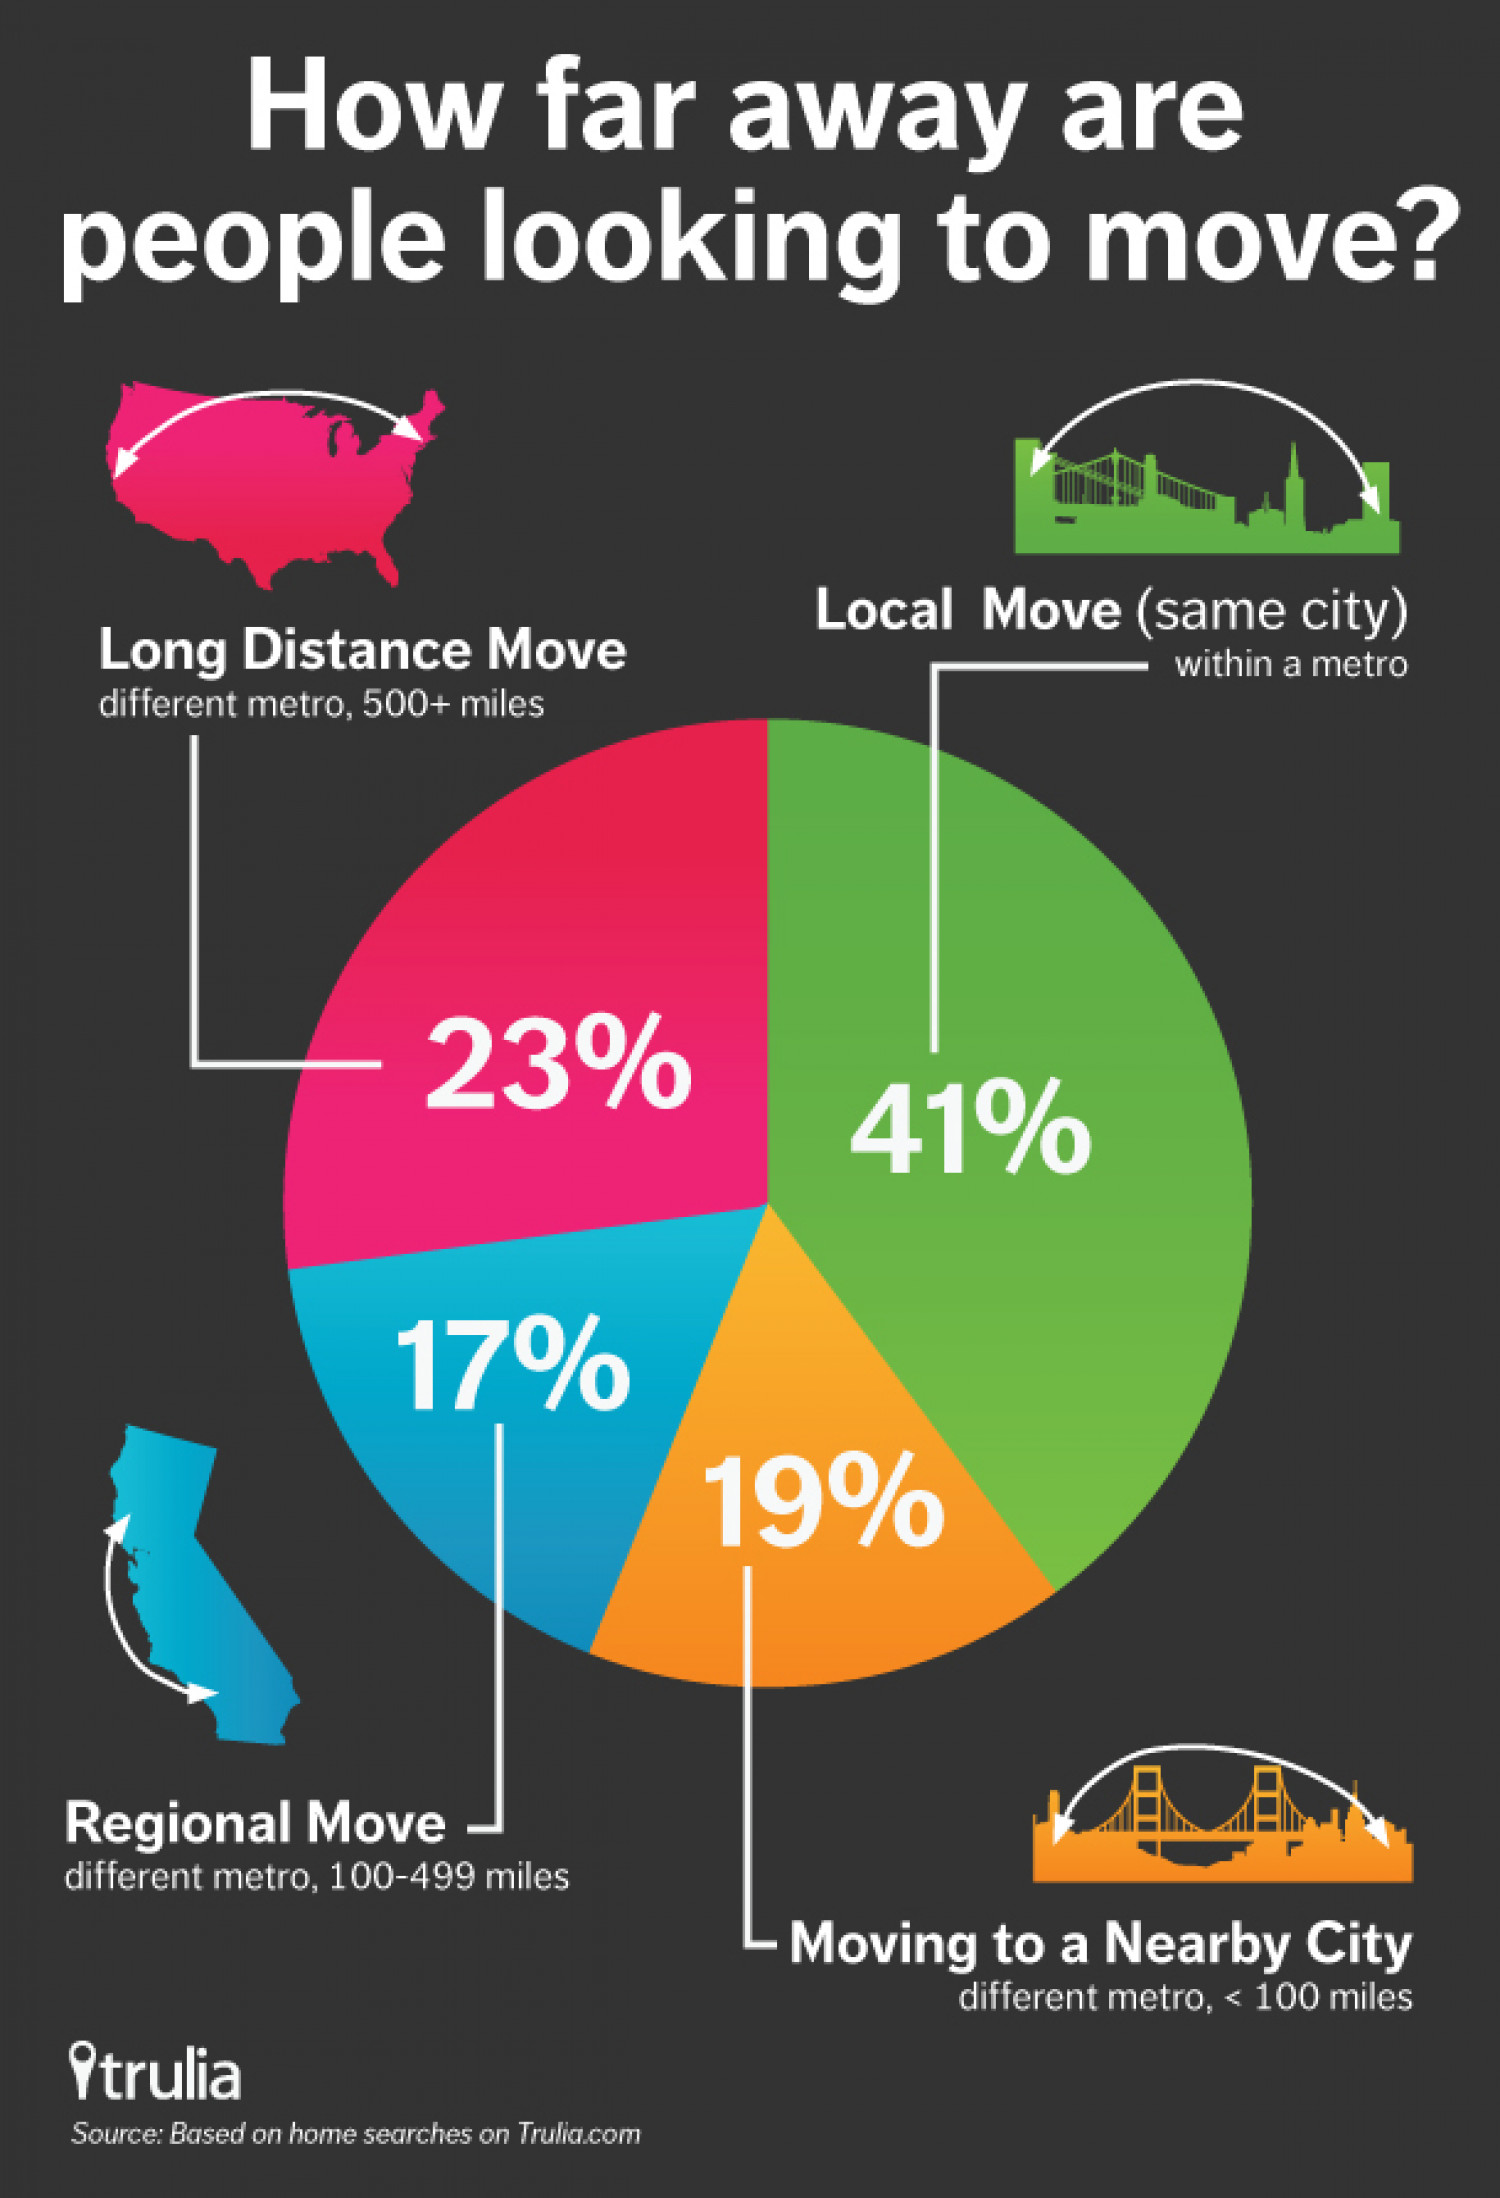 How Far Away are People Looking to Move? Infographic